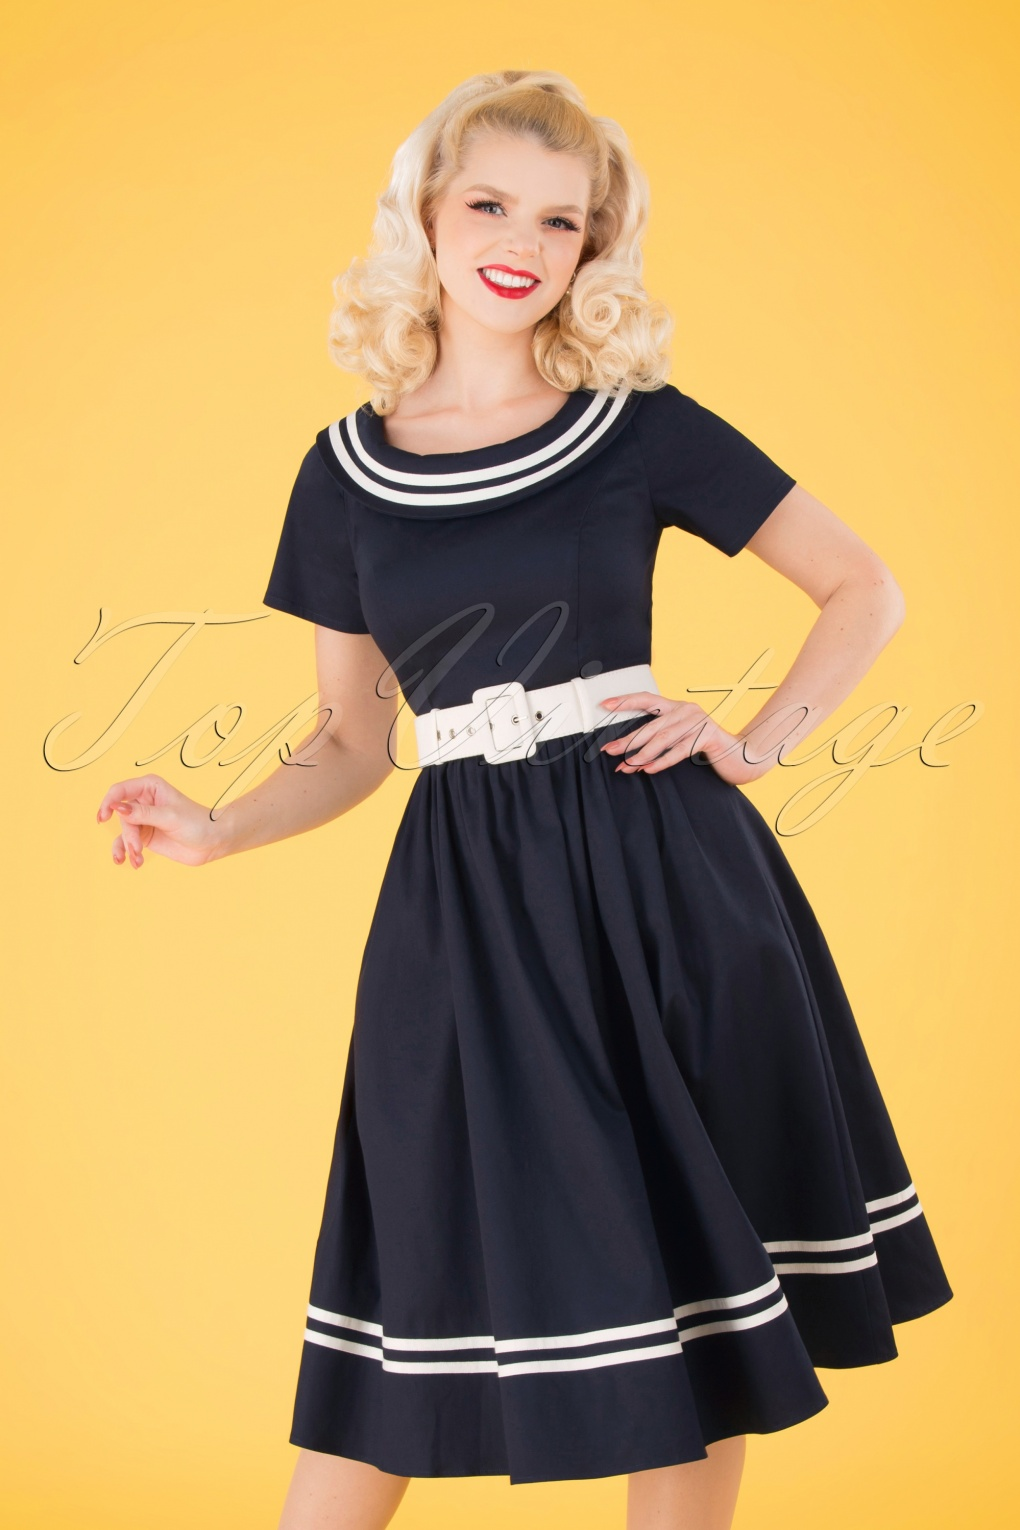 60s Dresses & 60s Style Dresses UK 50s Tina Nautical Swing Dress in Navy and White £62.64 AT vintagedancer.com